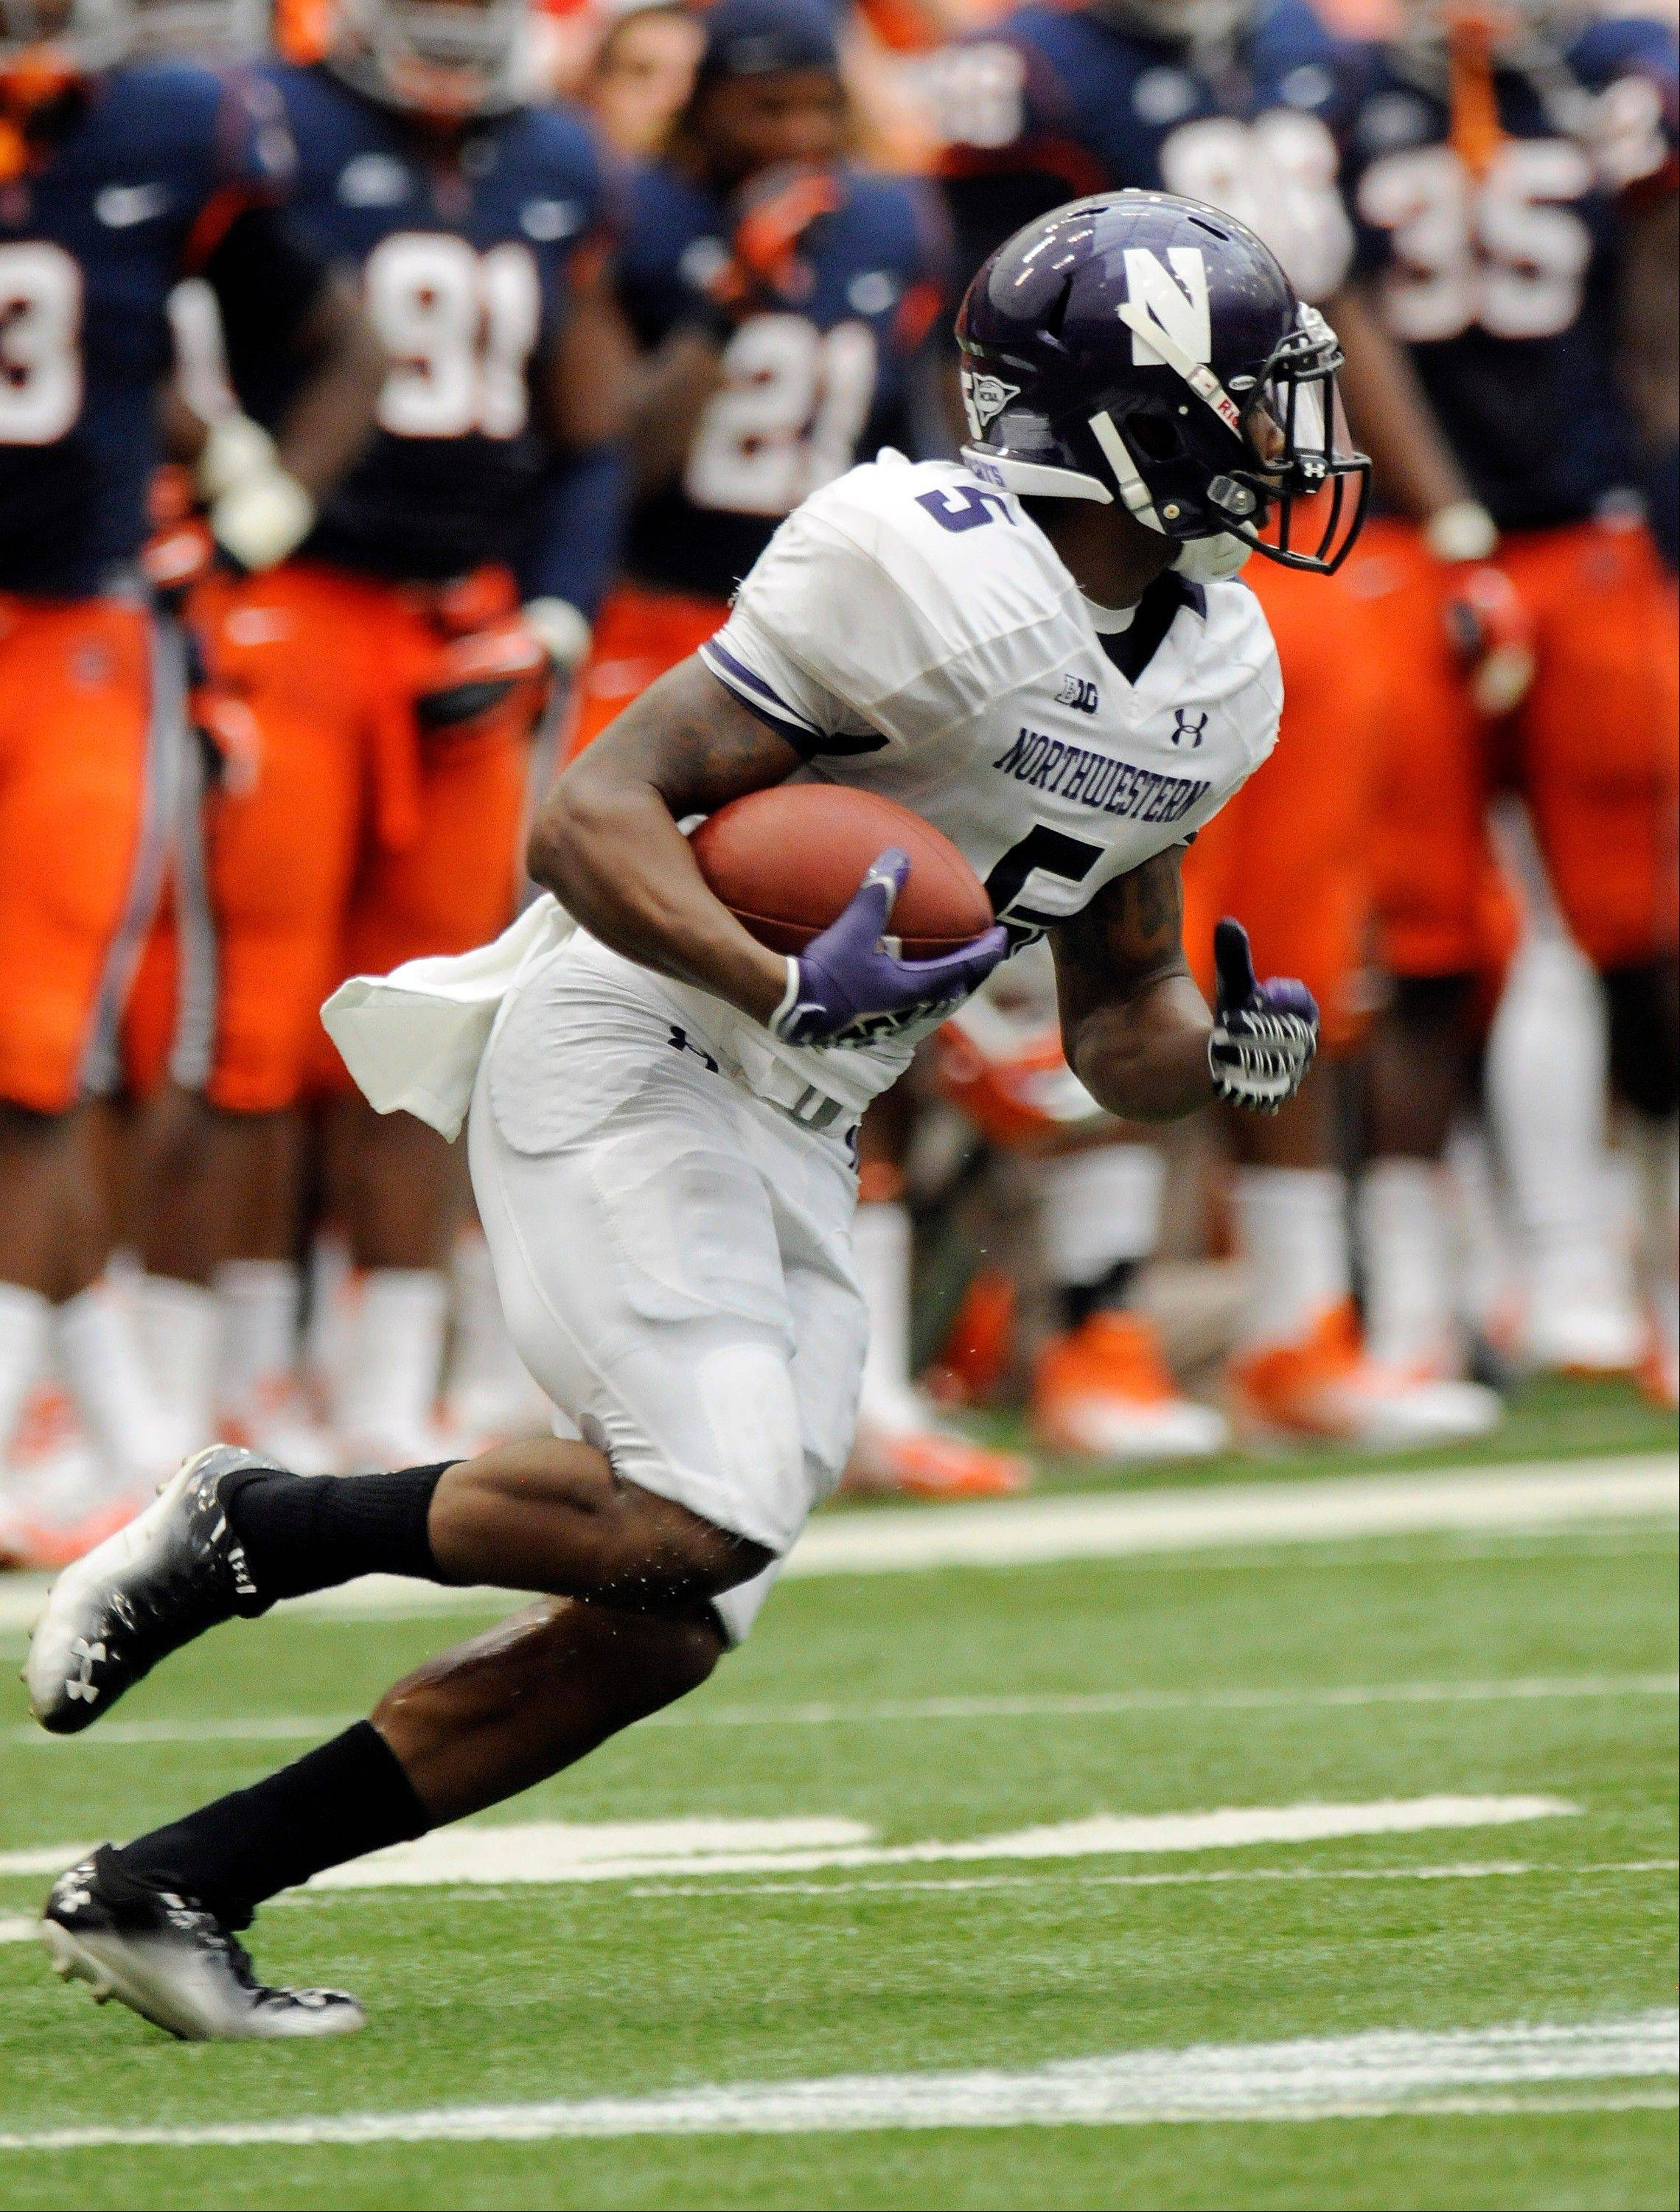 Northwestern's Venric Mark returns a kick for a touchdown against Syracuse's during last Saturday's road game.